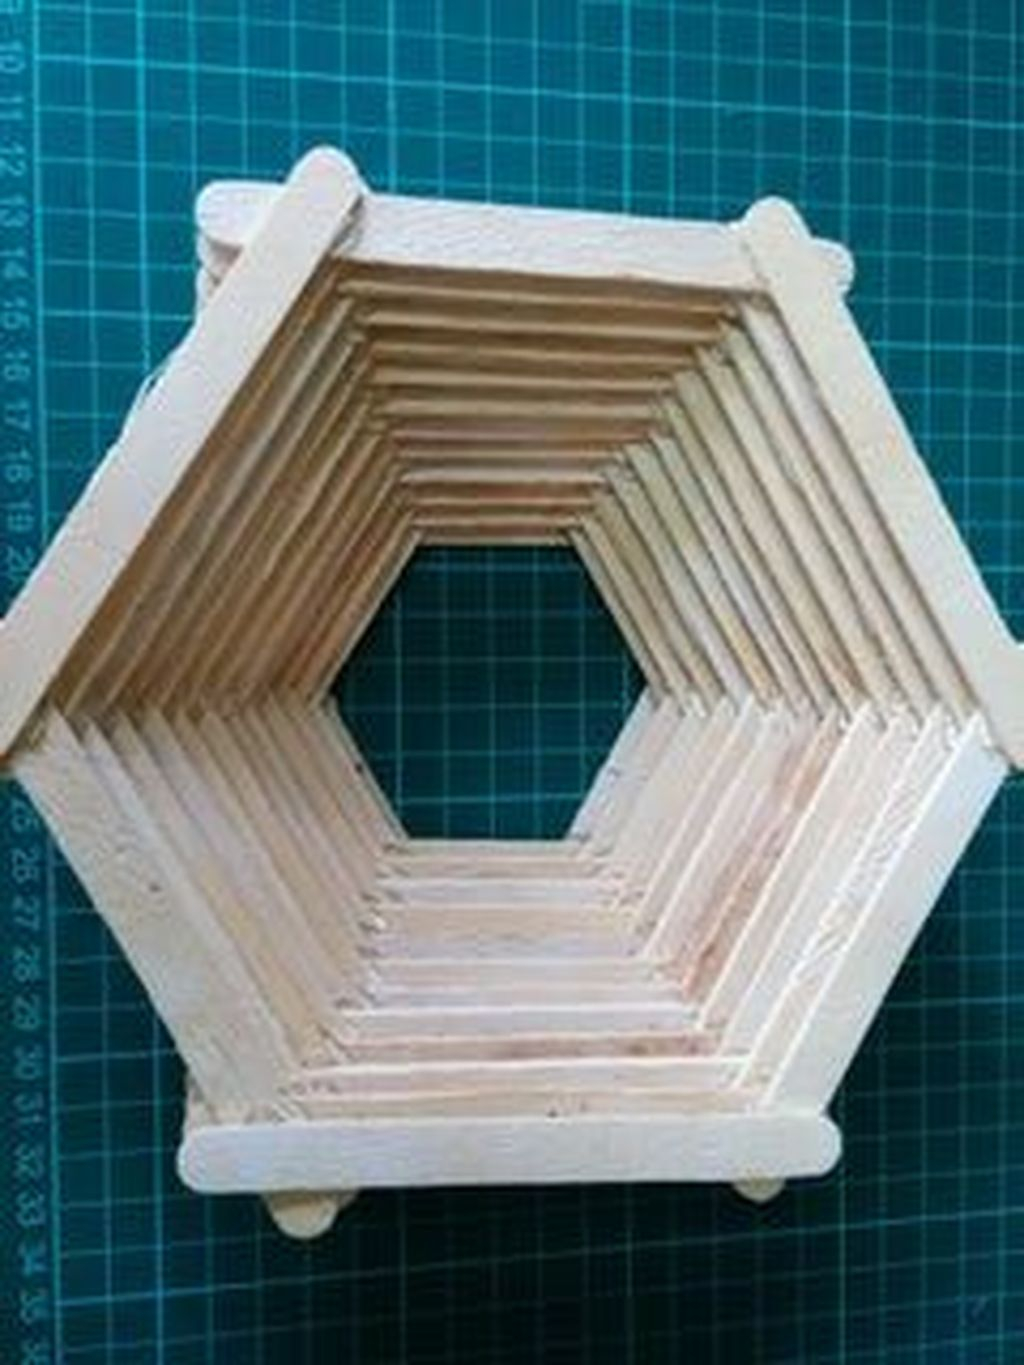 Gorgeous Diy Popsicle Stick Design Ideas For Home To Try Asap 30